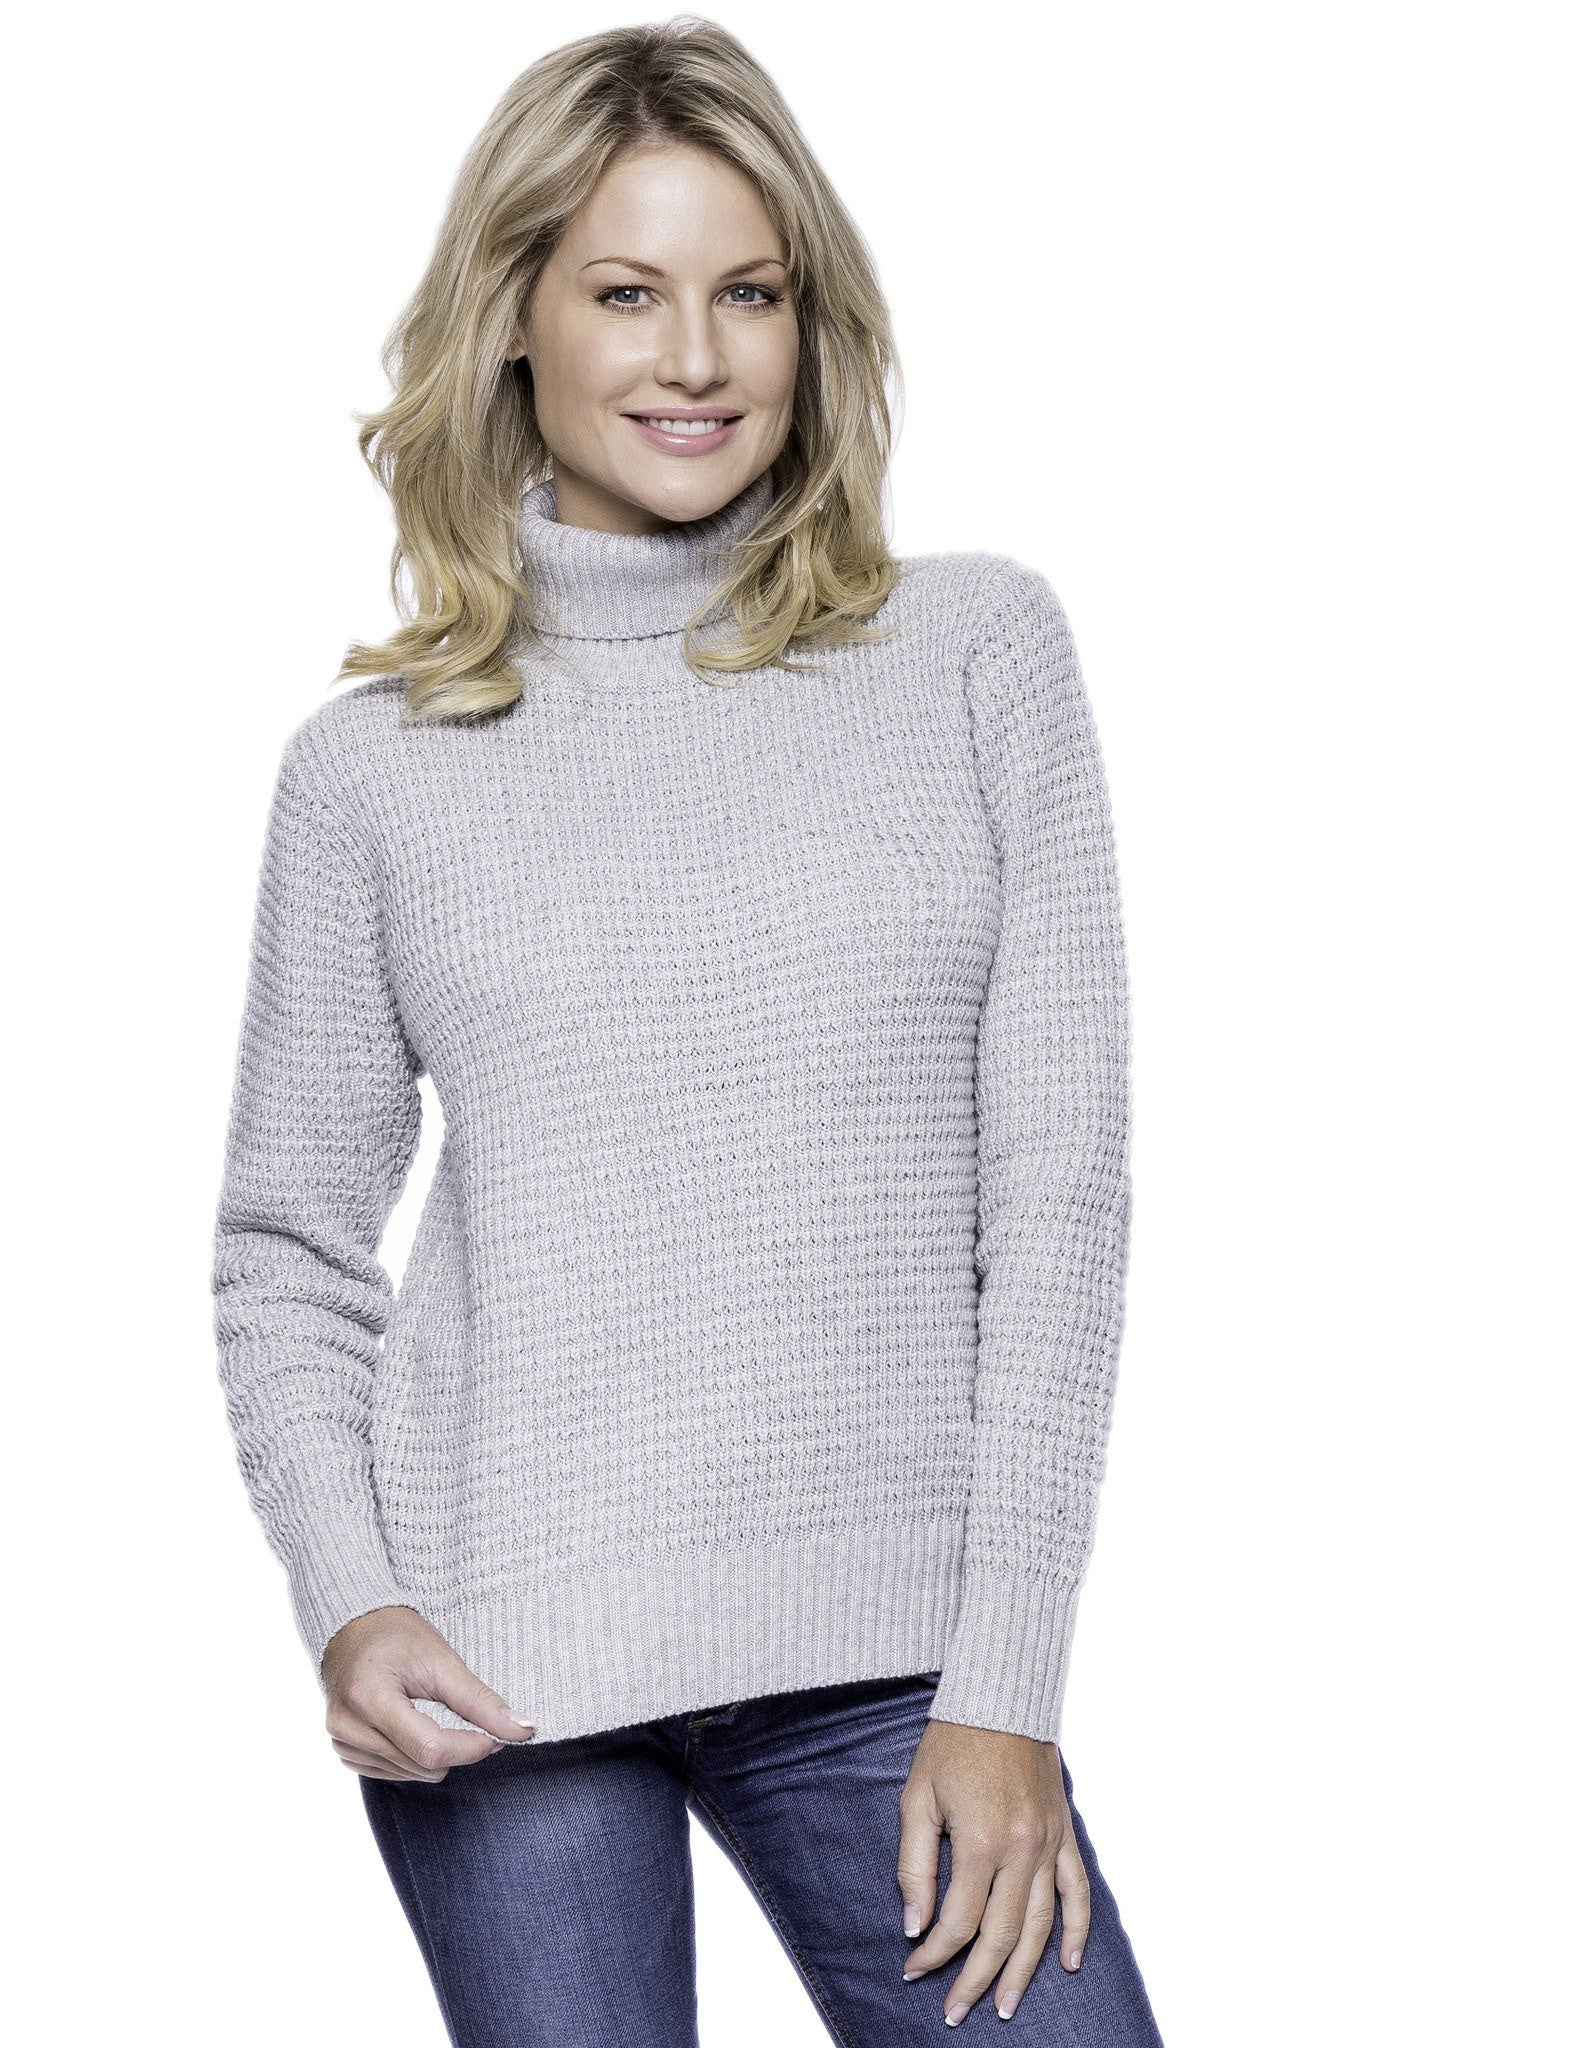 Cashmere Blend Turtle Neck Sweater - Heather Grey